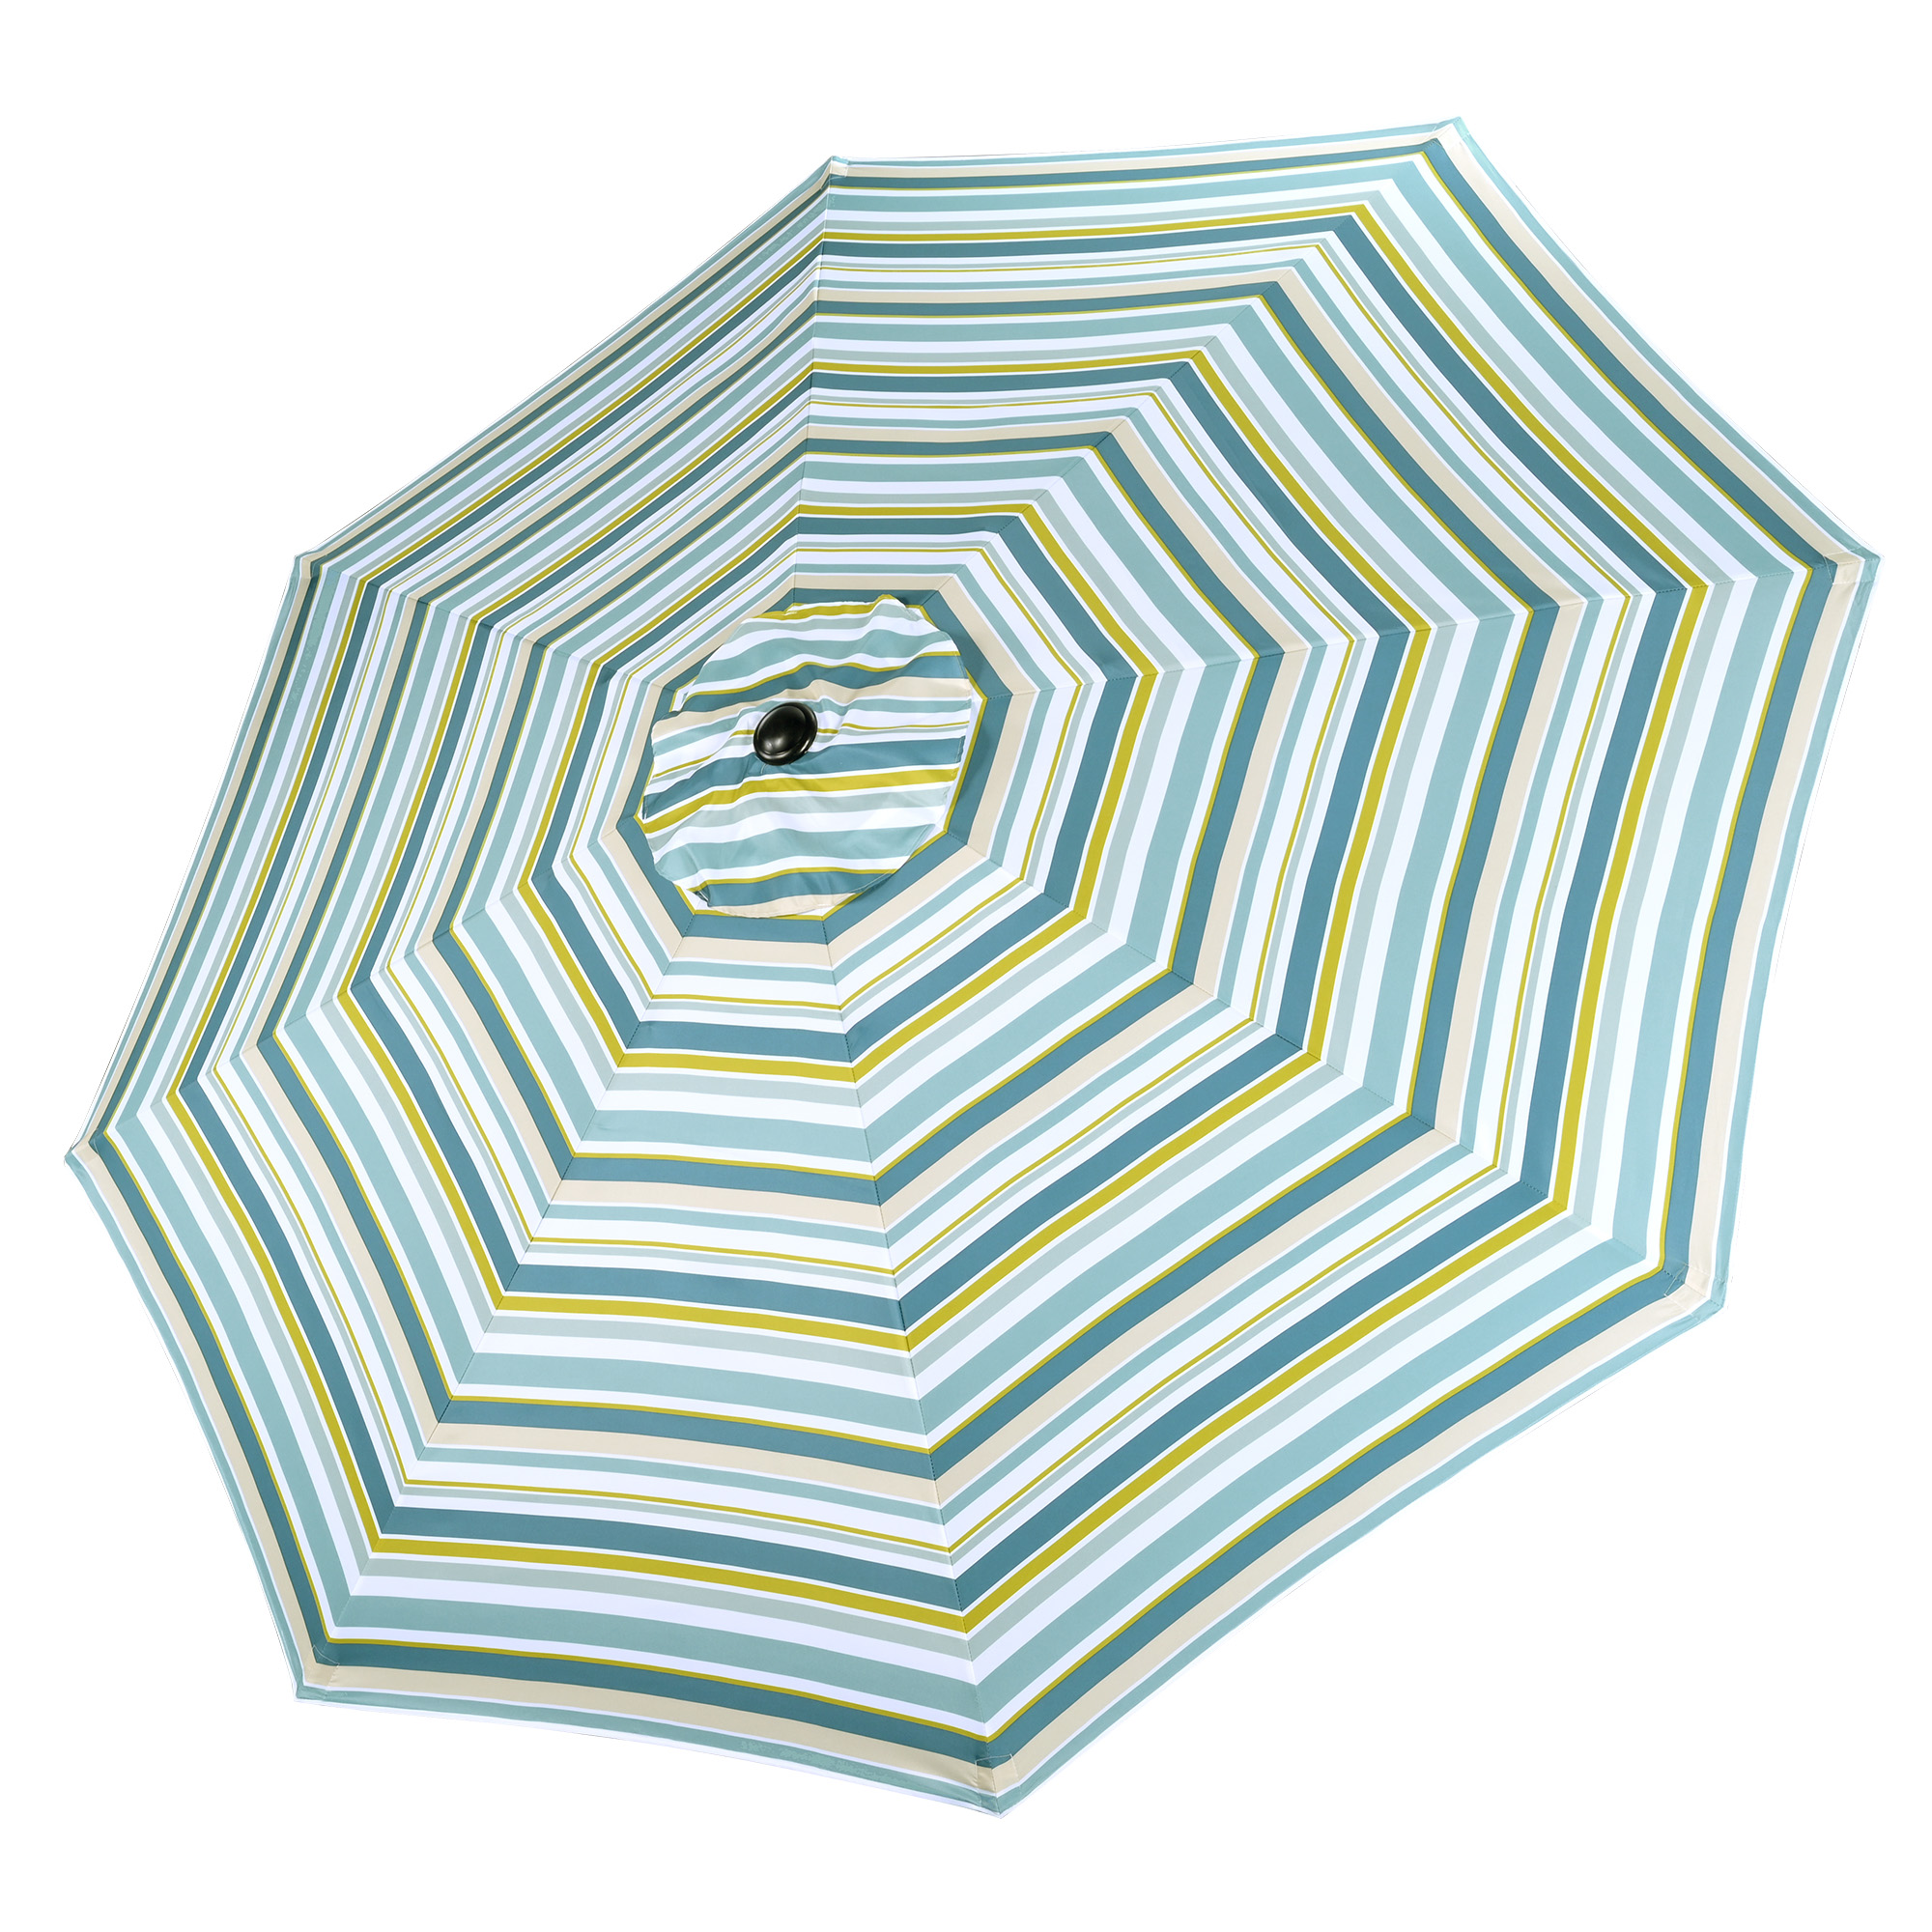 thumbnail 421 - 8'/9'/10'/13' Umbrella Replacement Canopy 8 Rib Outdoor Patio Top Cover Only Opt